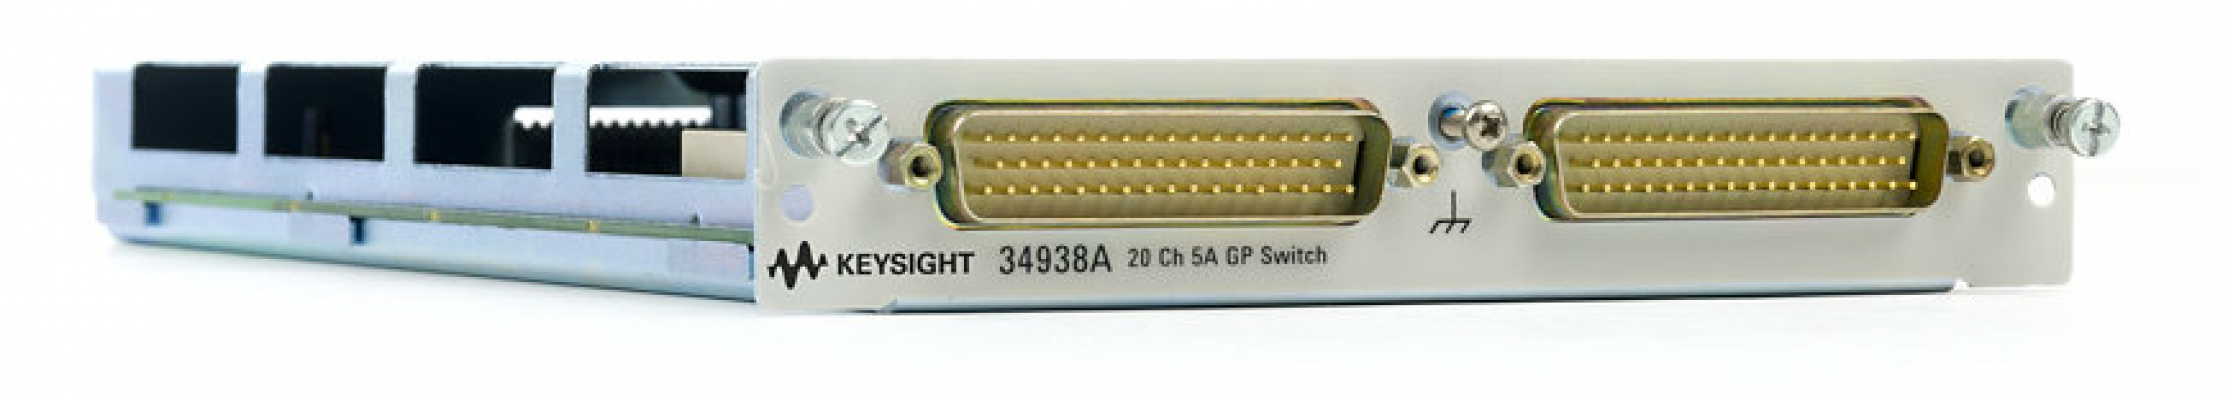 20-Channel 5A Form A Switch for 34980A, 34938A